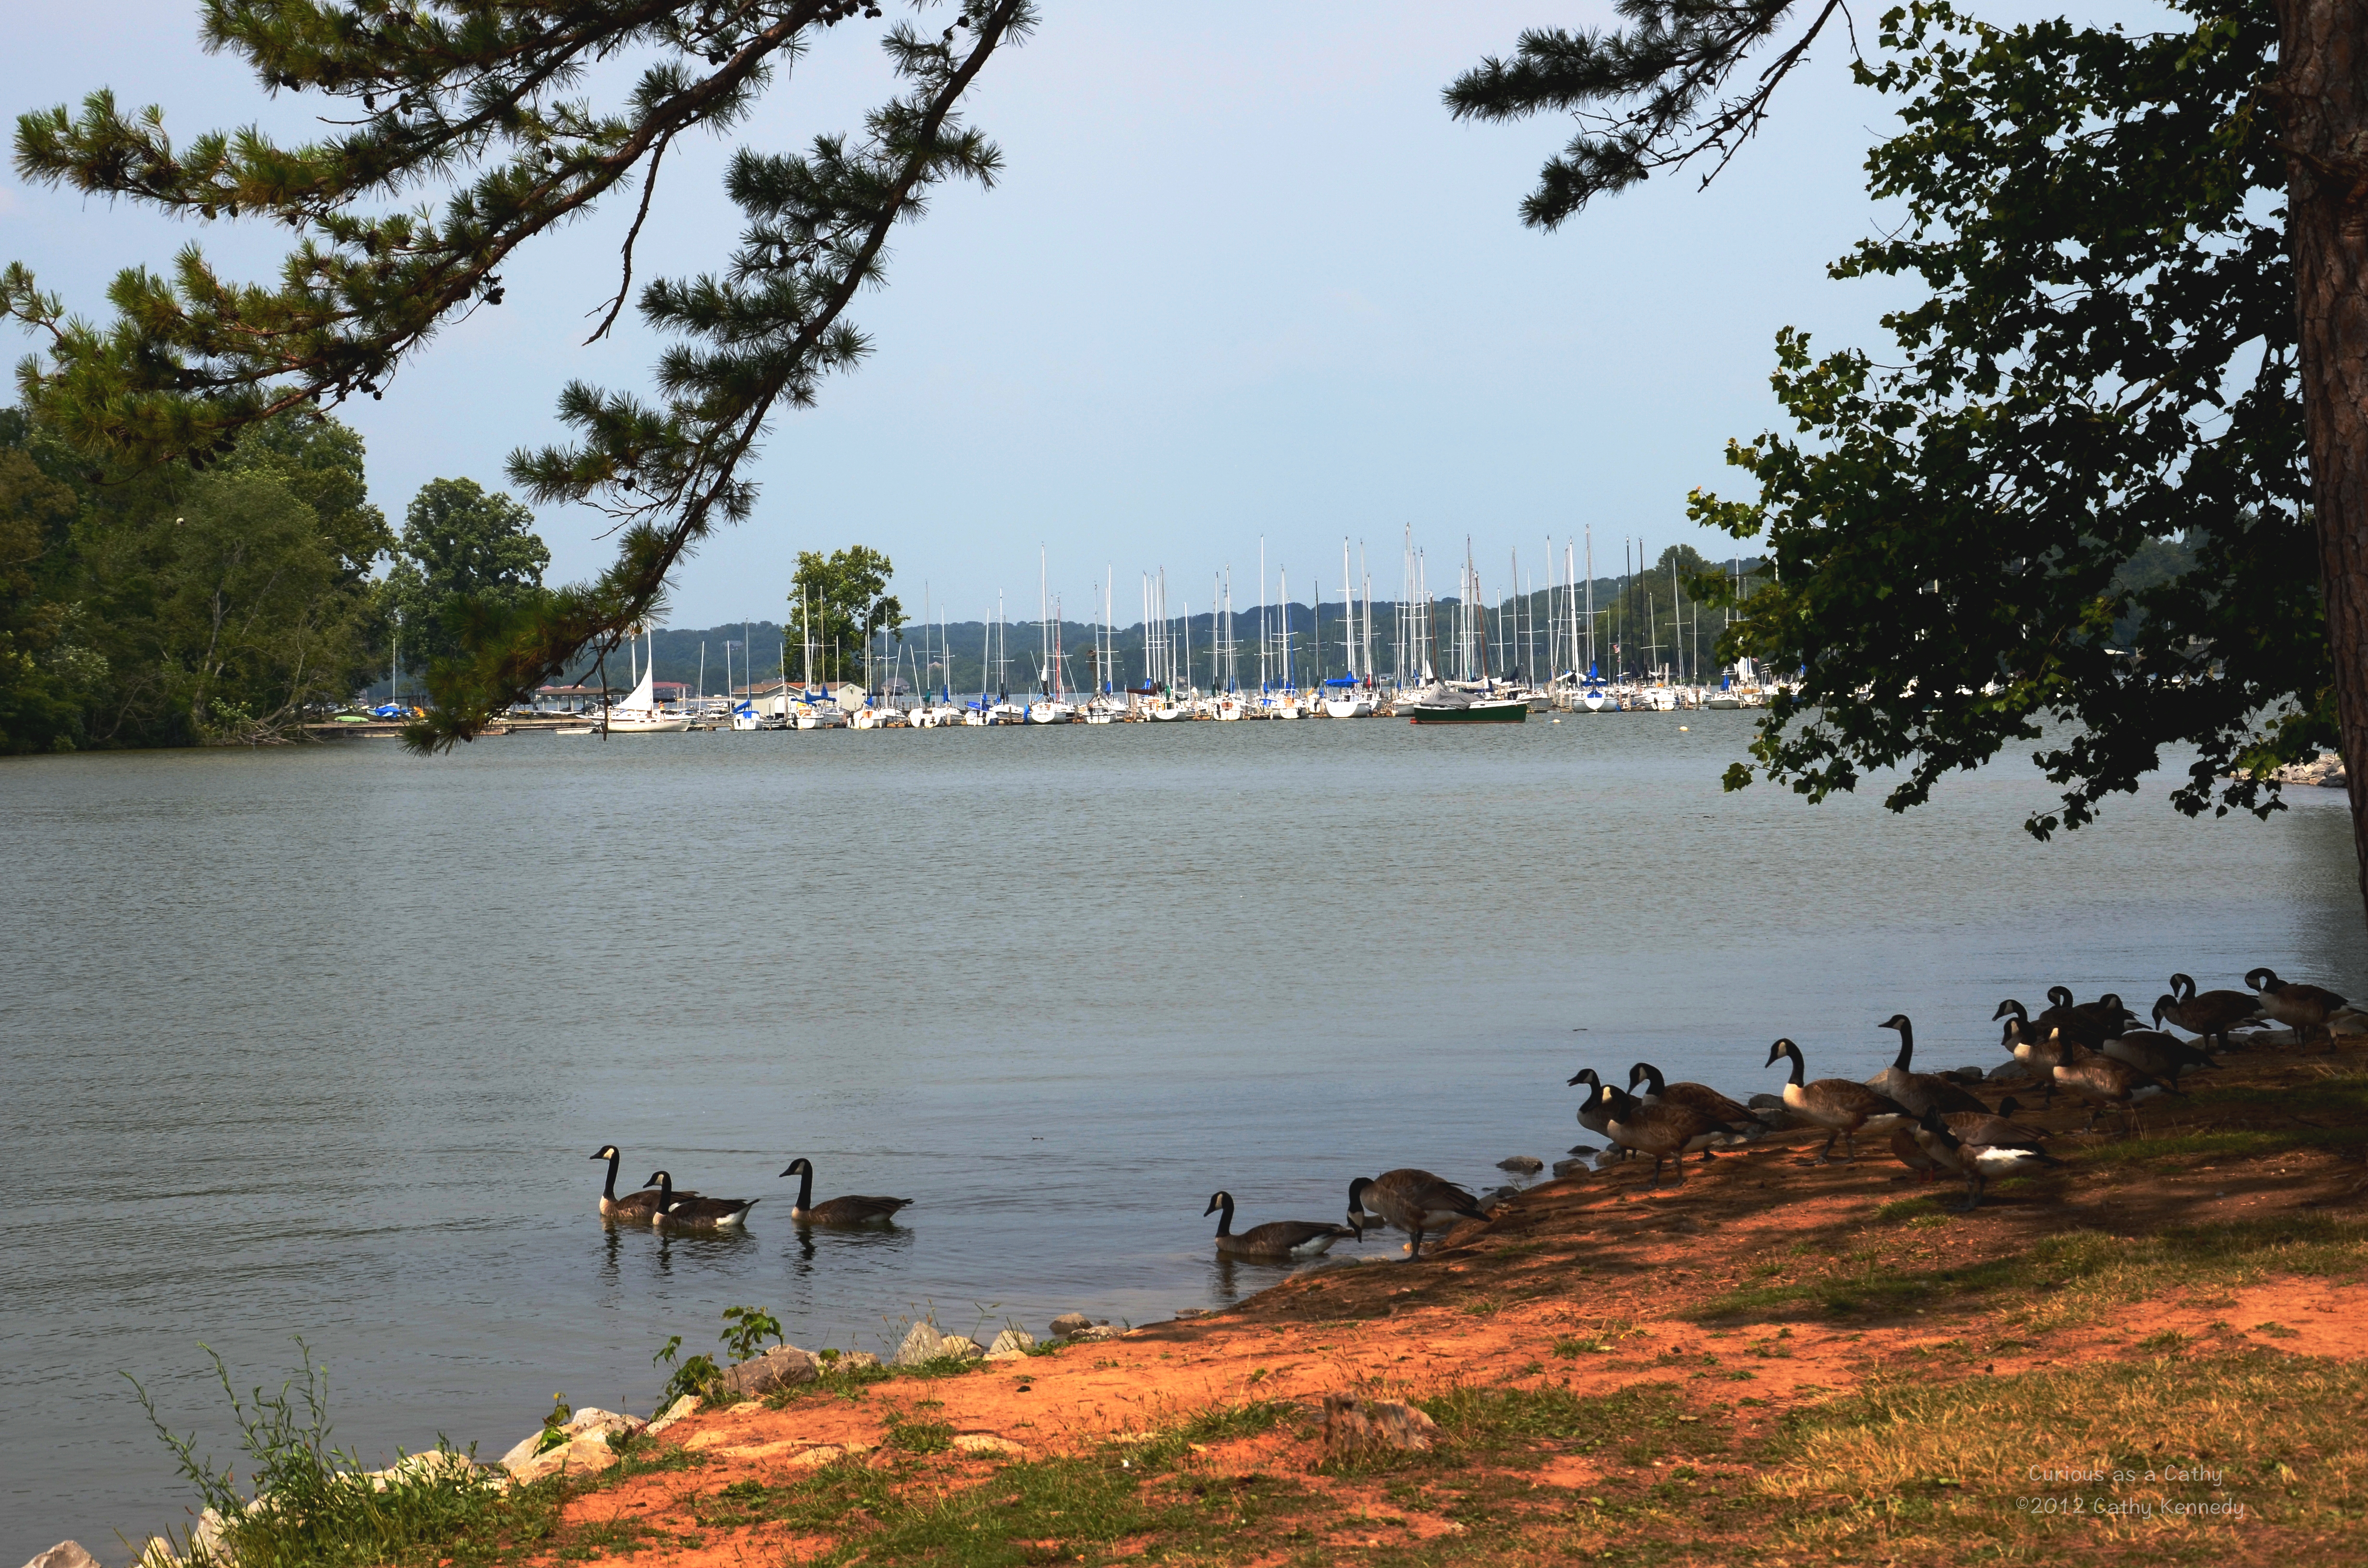 fort loudon singles Fort loudoun lake under $500,000 | norris lake lakefront real estate, norris lakefront property for sale, norris lake homes, condos and lots for sale norris lake front communities for sale.